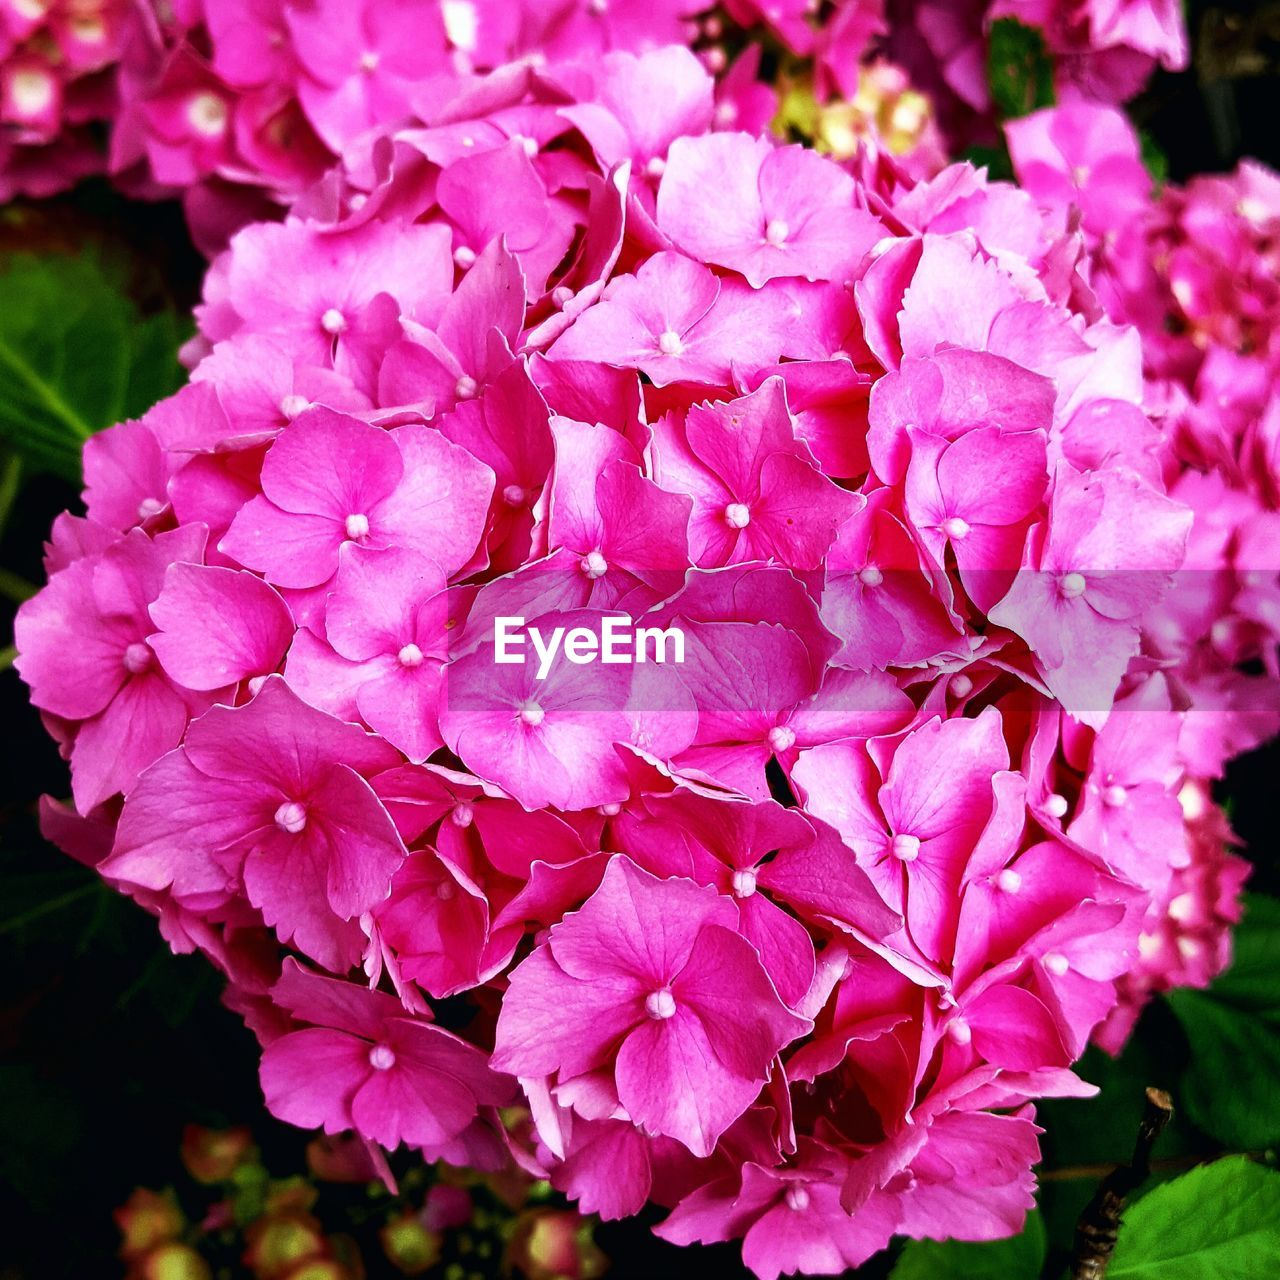 flower, nature, petal, beauty in nature, growth, plant, purple, fragility, no people, pink color, blooming, outdoors, flower head, freshness, bougainvillea, close-up, day